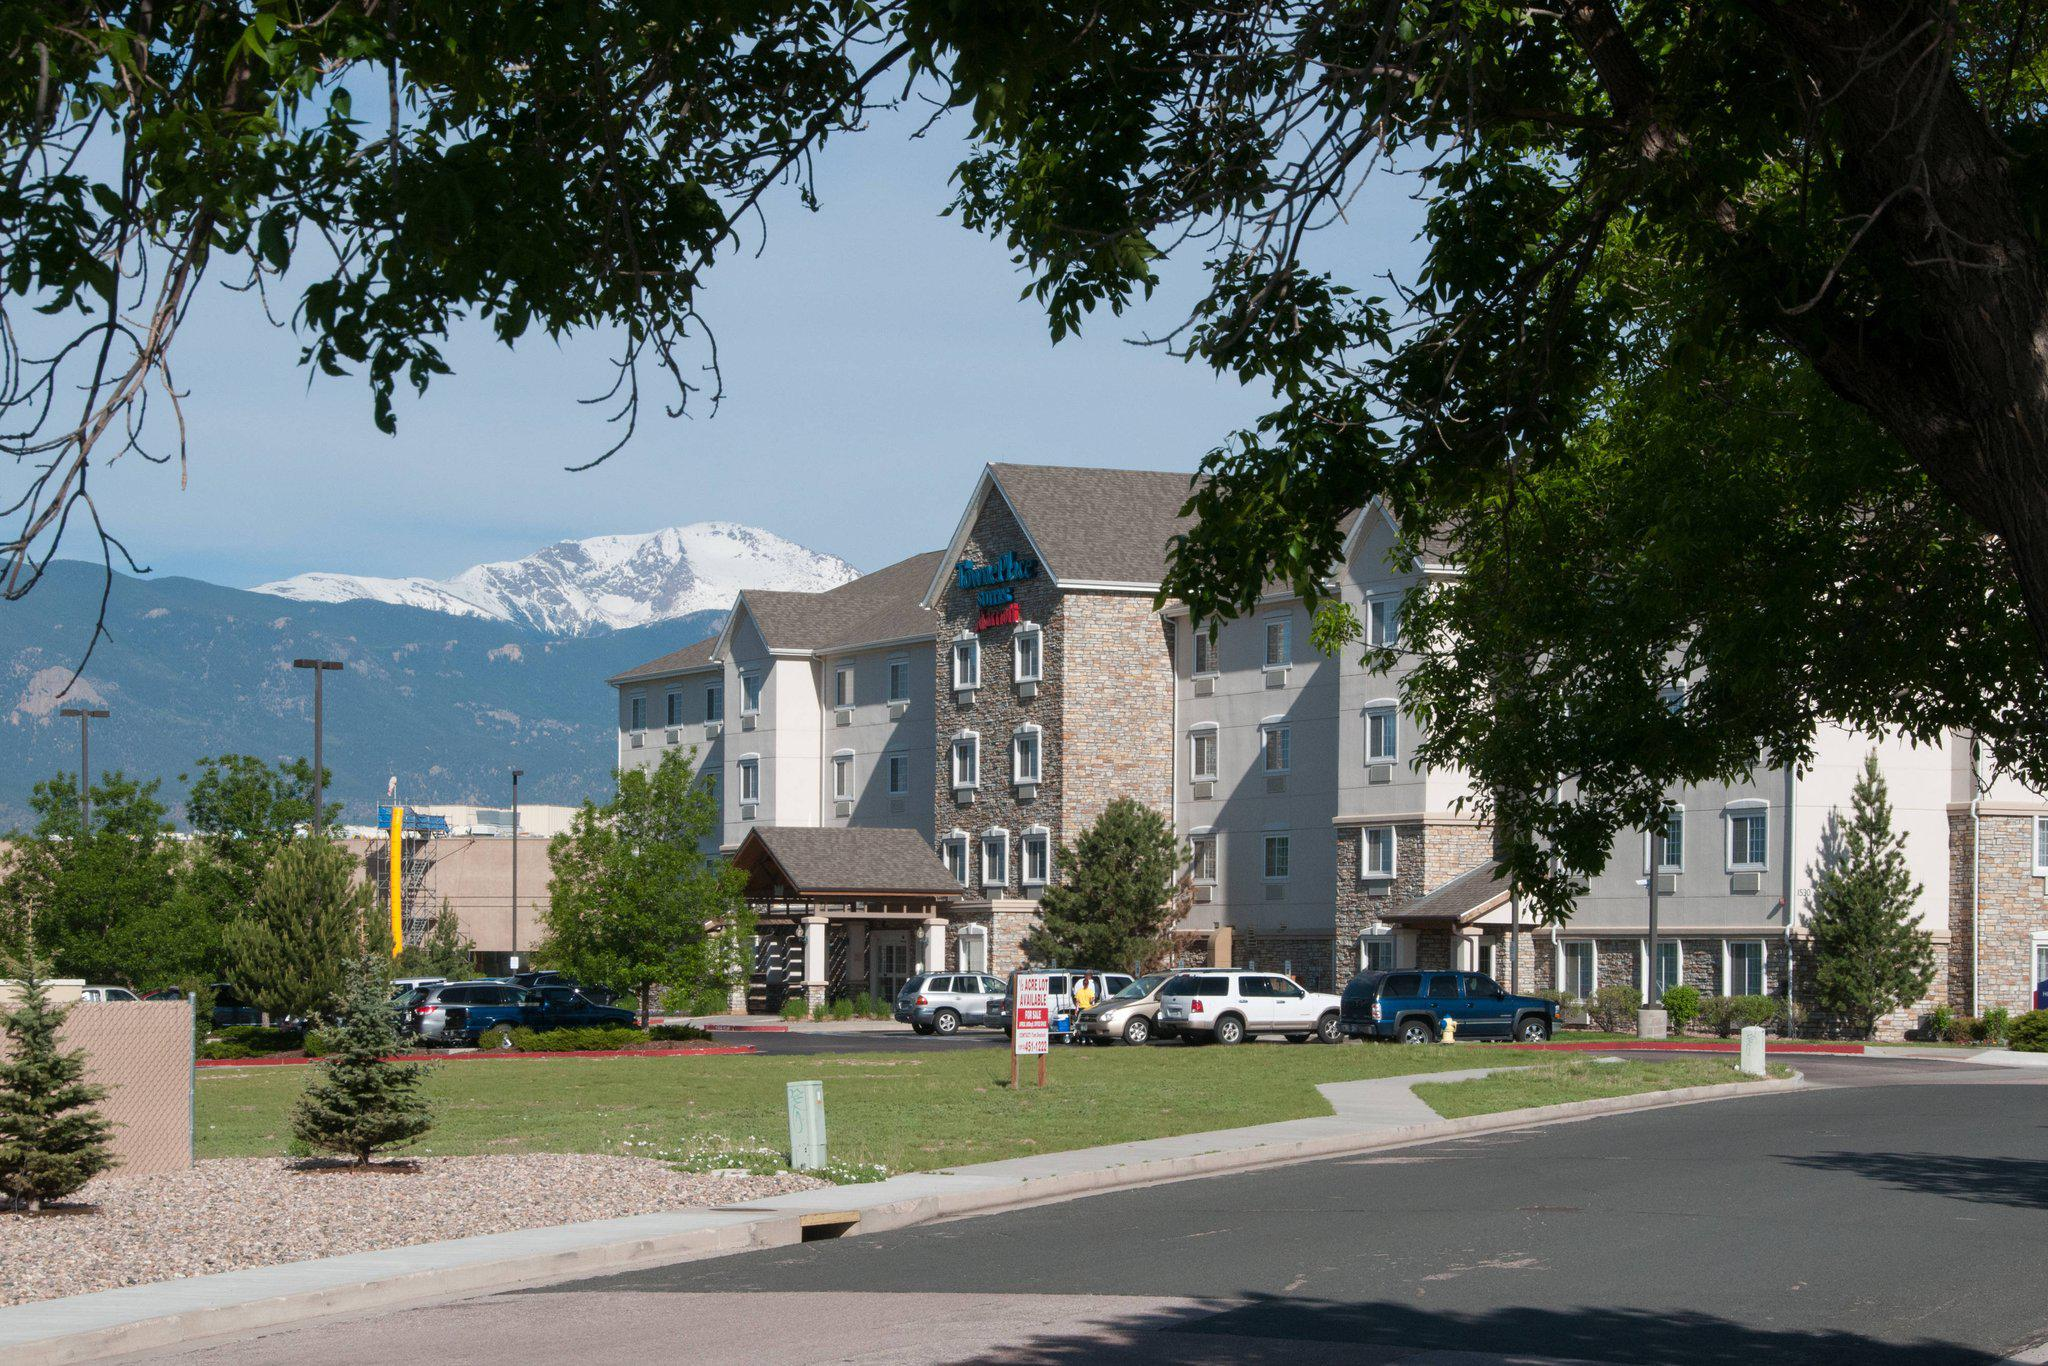 TownePlace Suites by Marriott Colorado Springs South